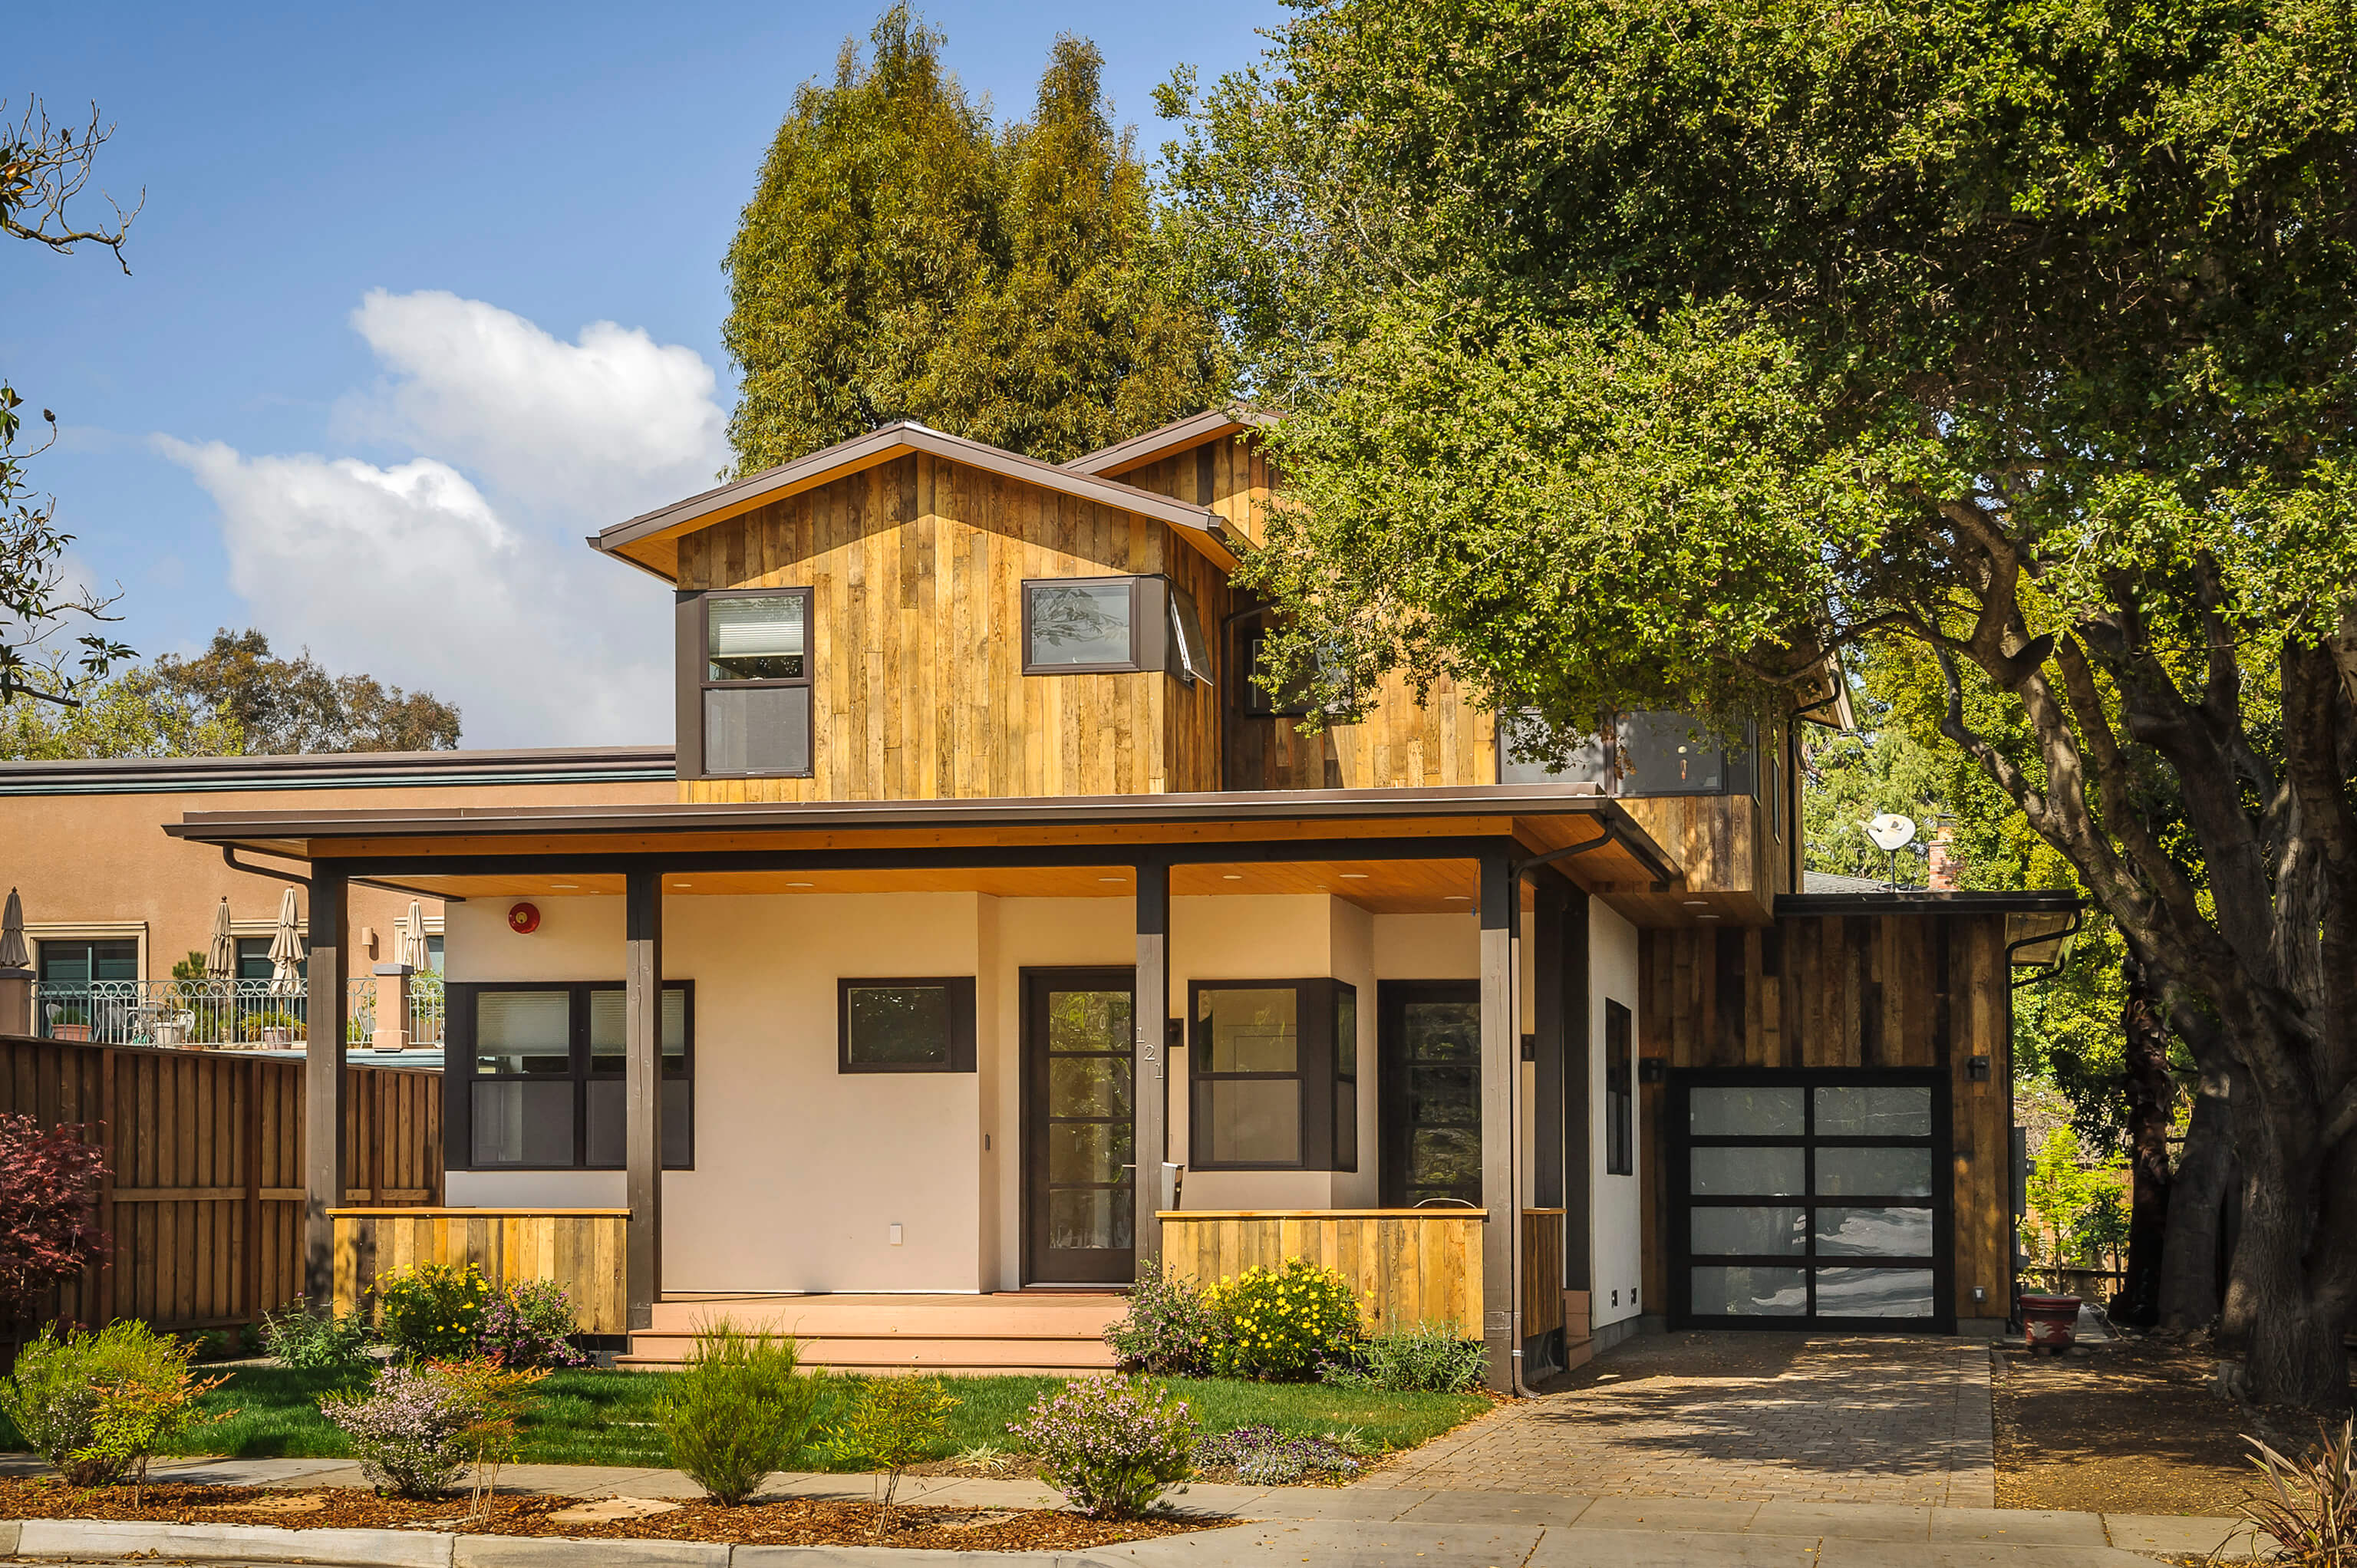 zeta communities inc  closes california modular home factory